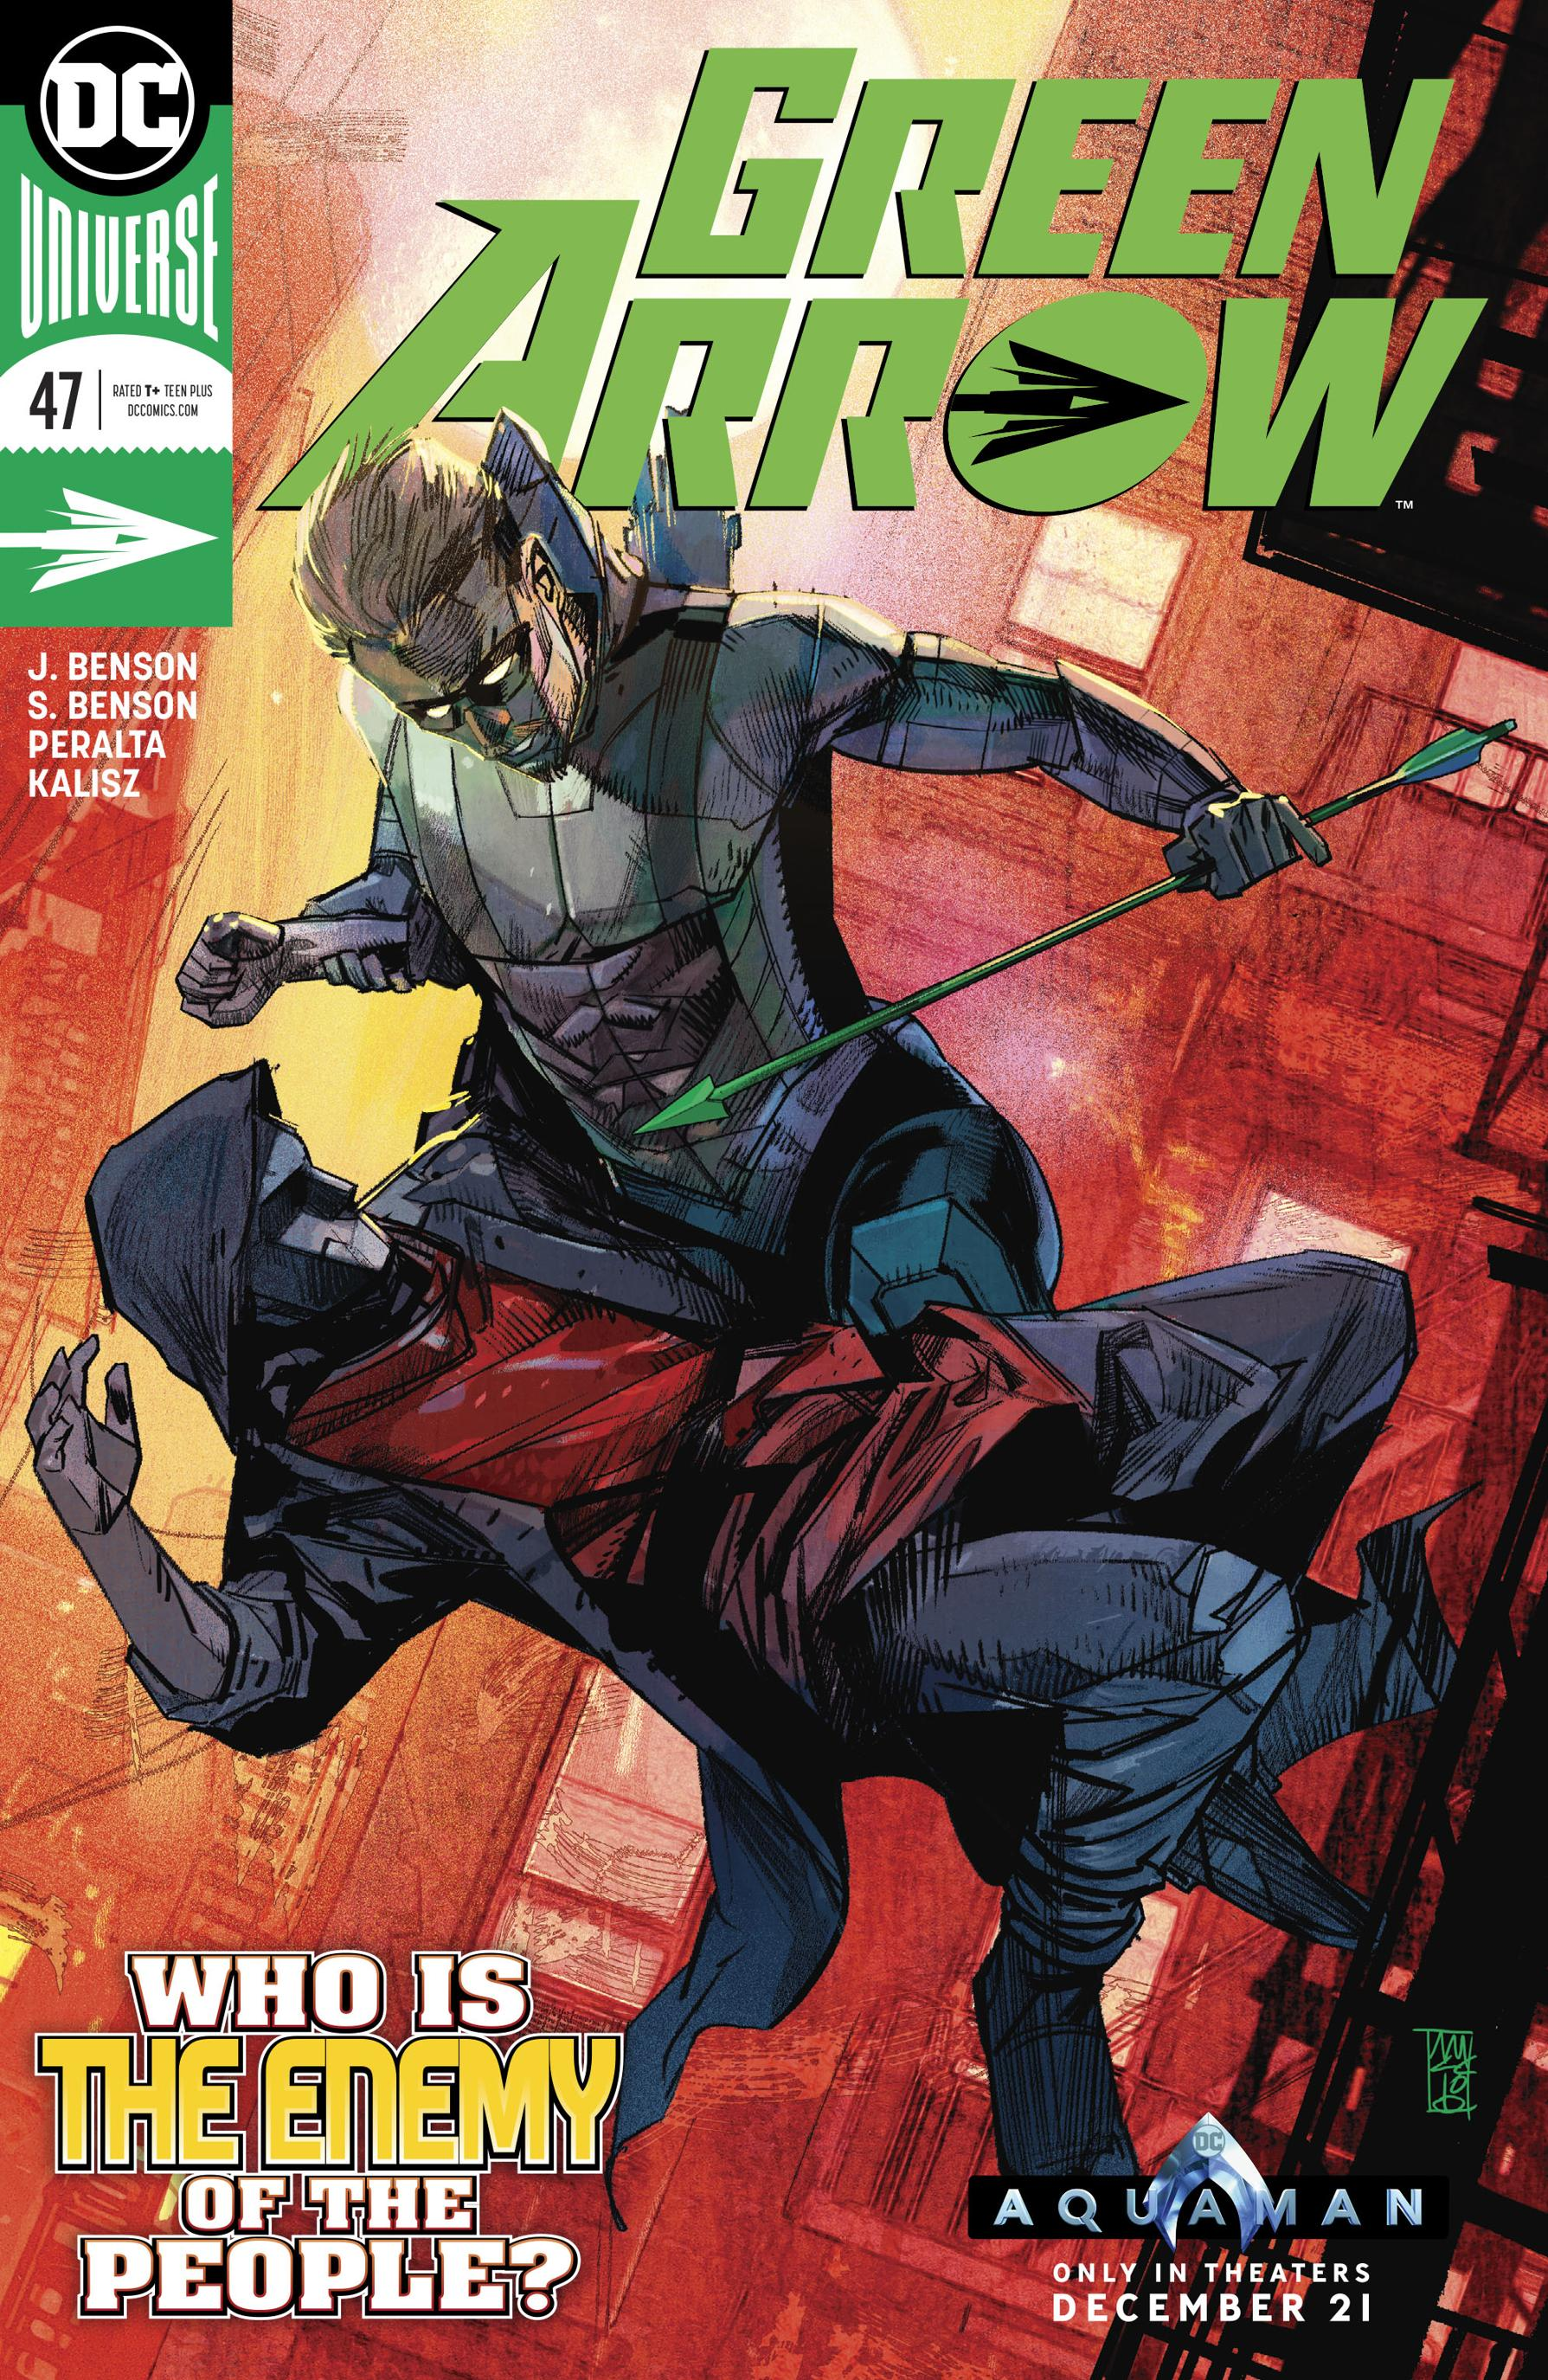 Green Arrow 047 2019 2 covers Digital Zone